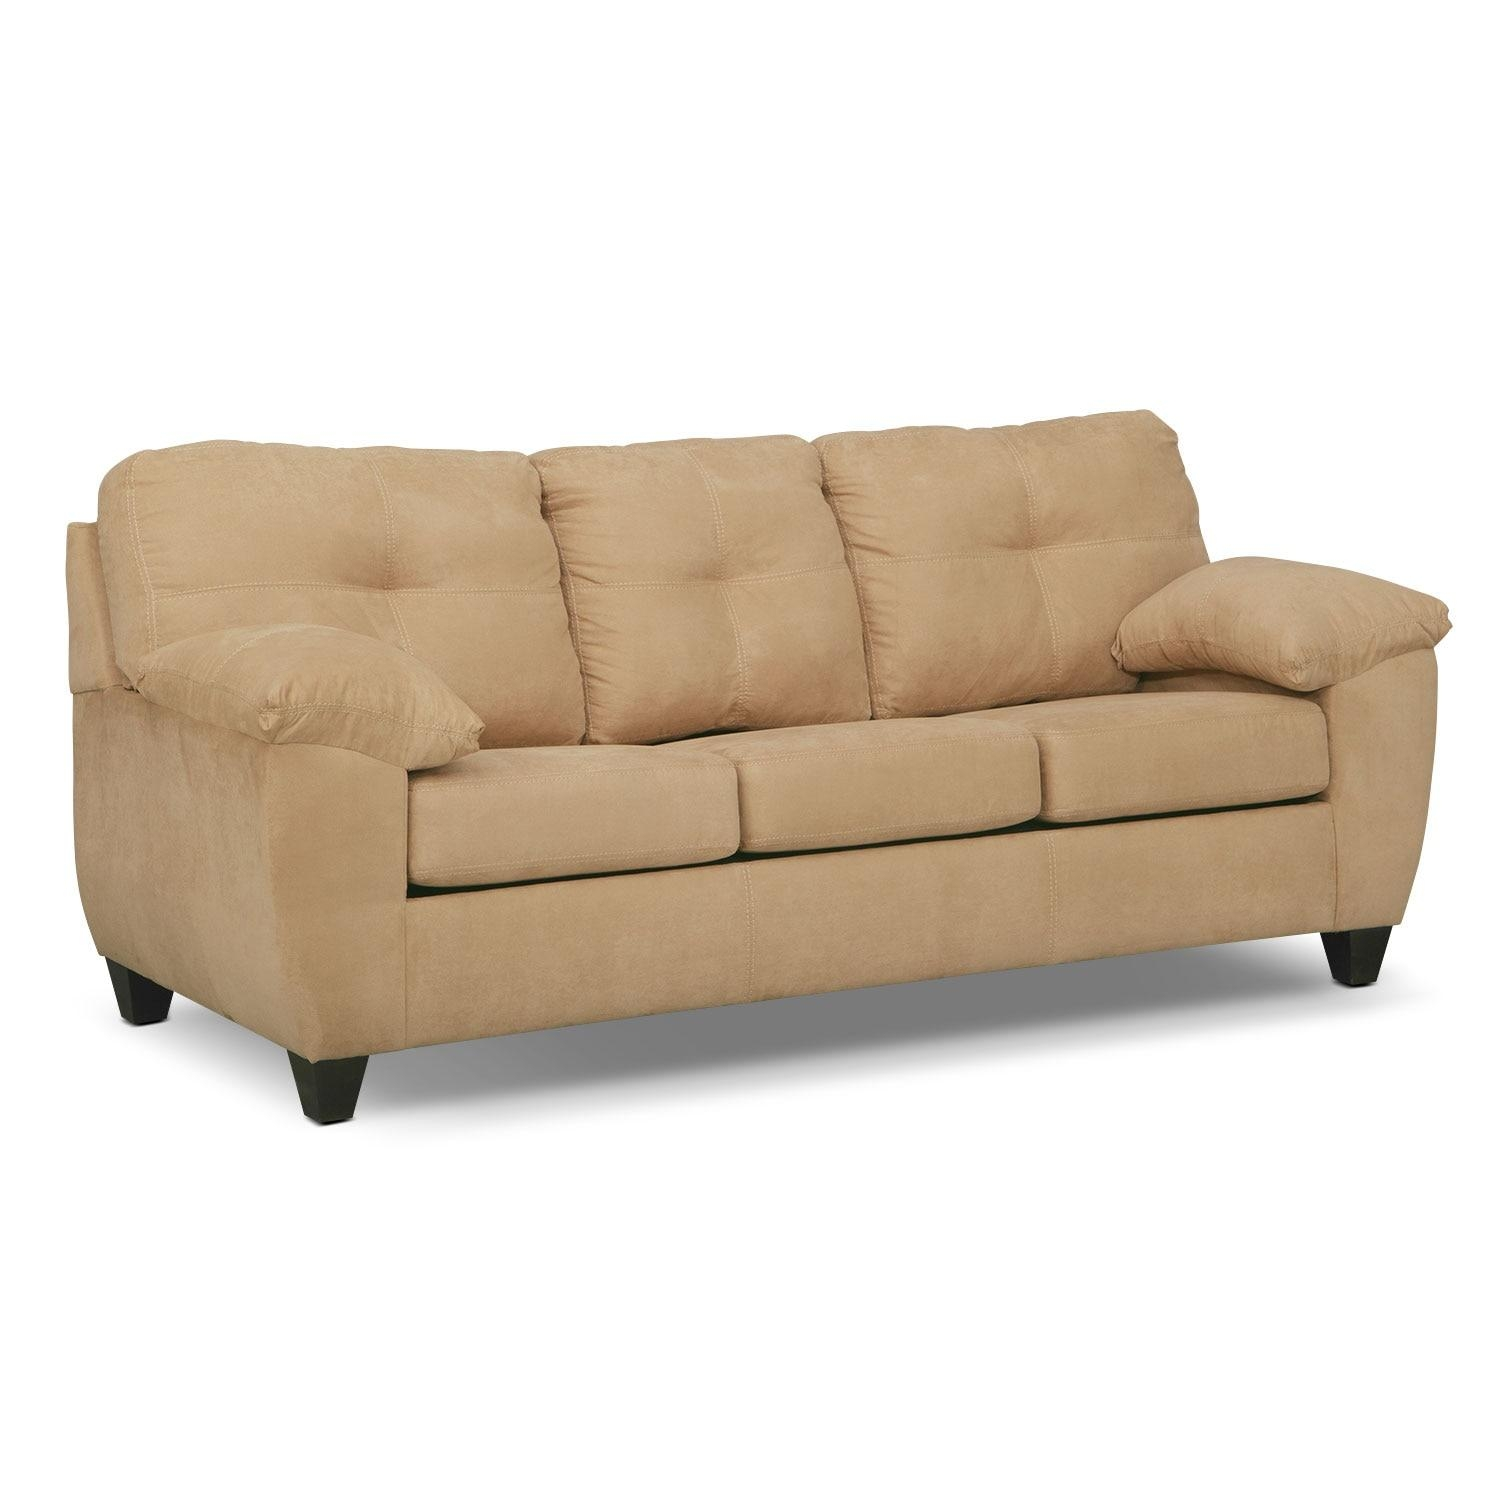 Sleeper Sofas | Value City Furniture | Value City Furniture Regarding City Sofa Beds (Image 13 of 20)